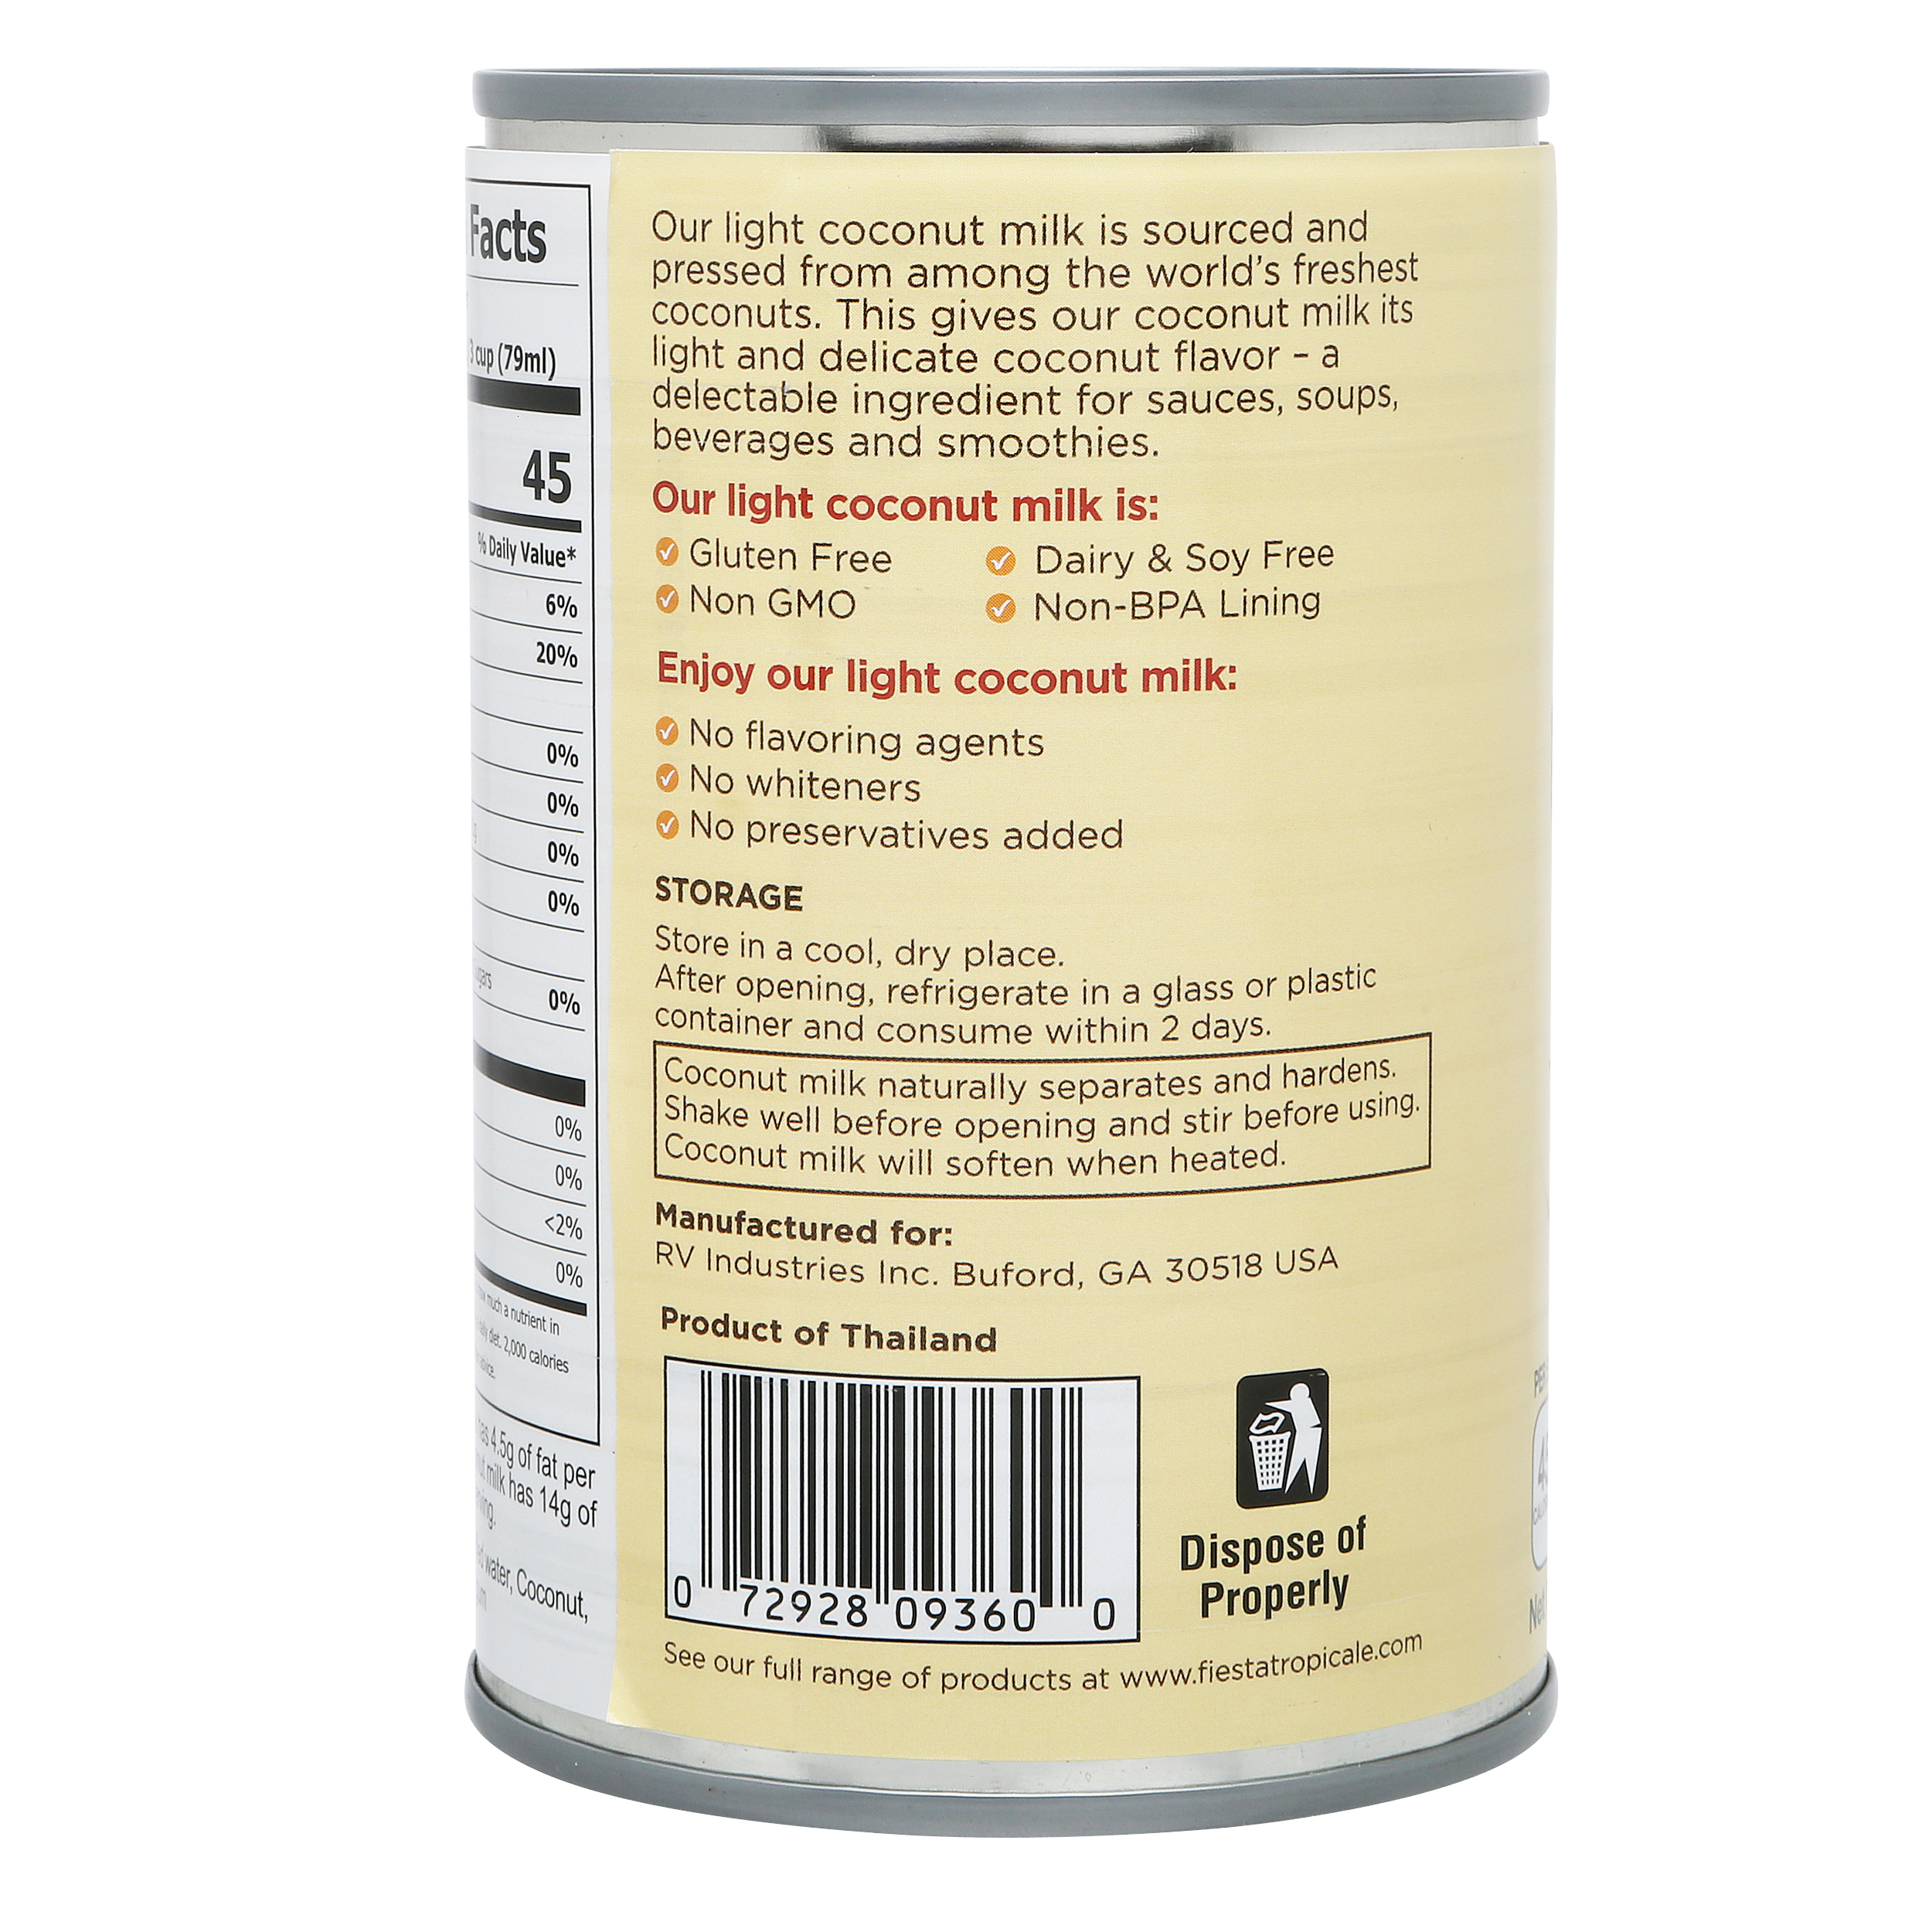 Fiesta Tropicale Light Coconut Milk_Back of Can